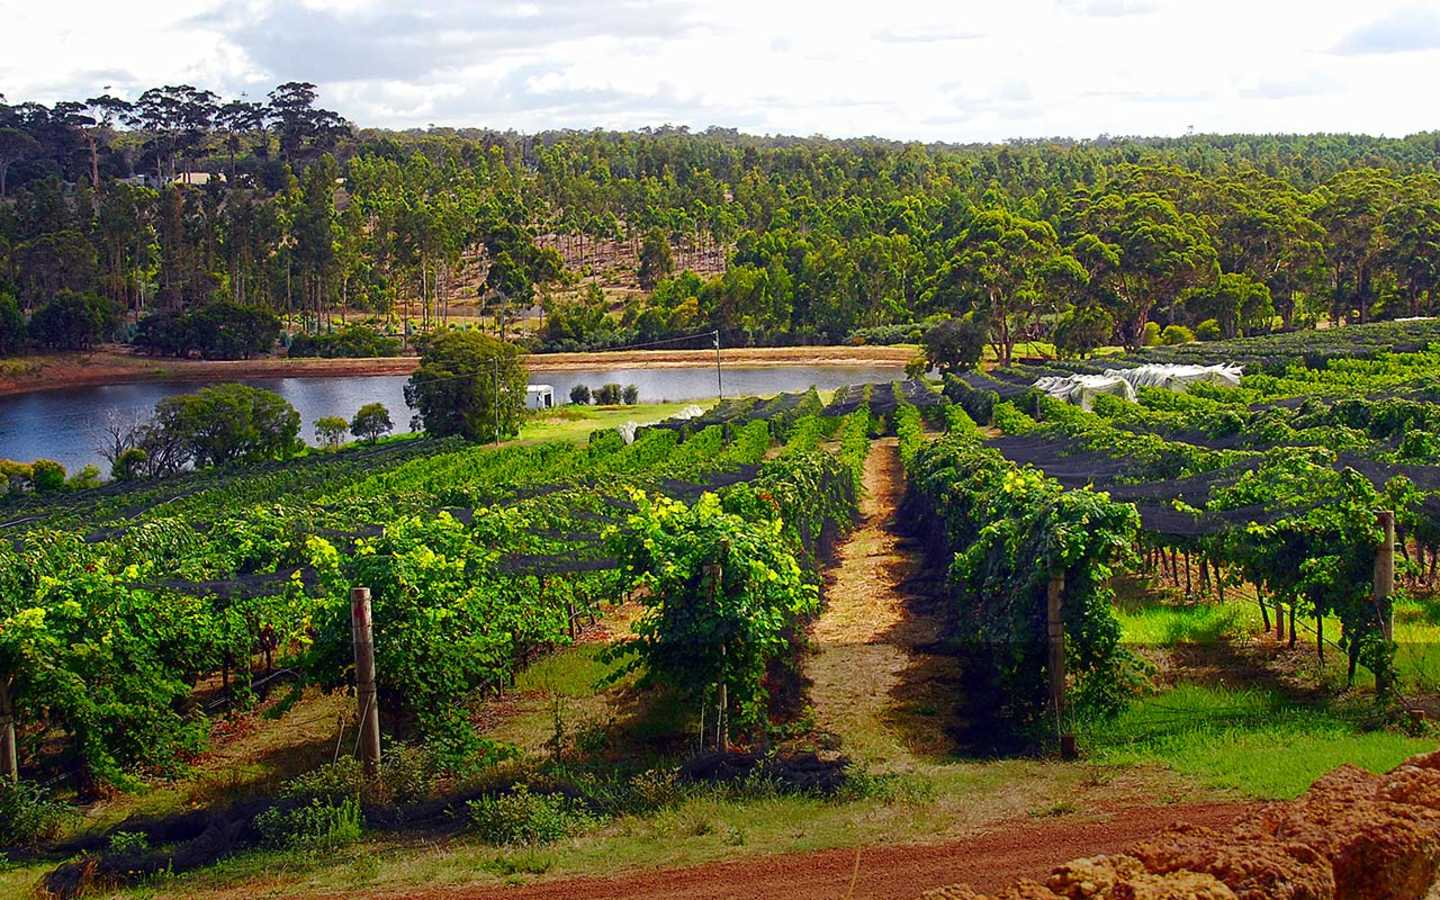 Gorgeous view of the vineyards